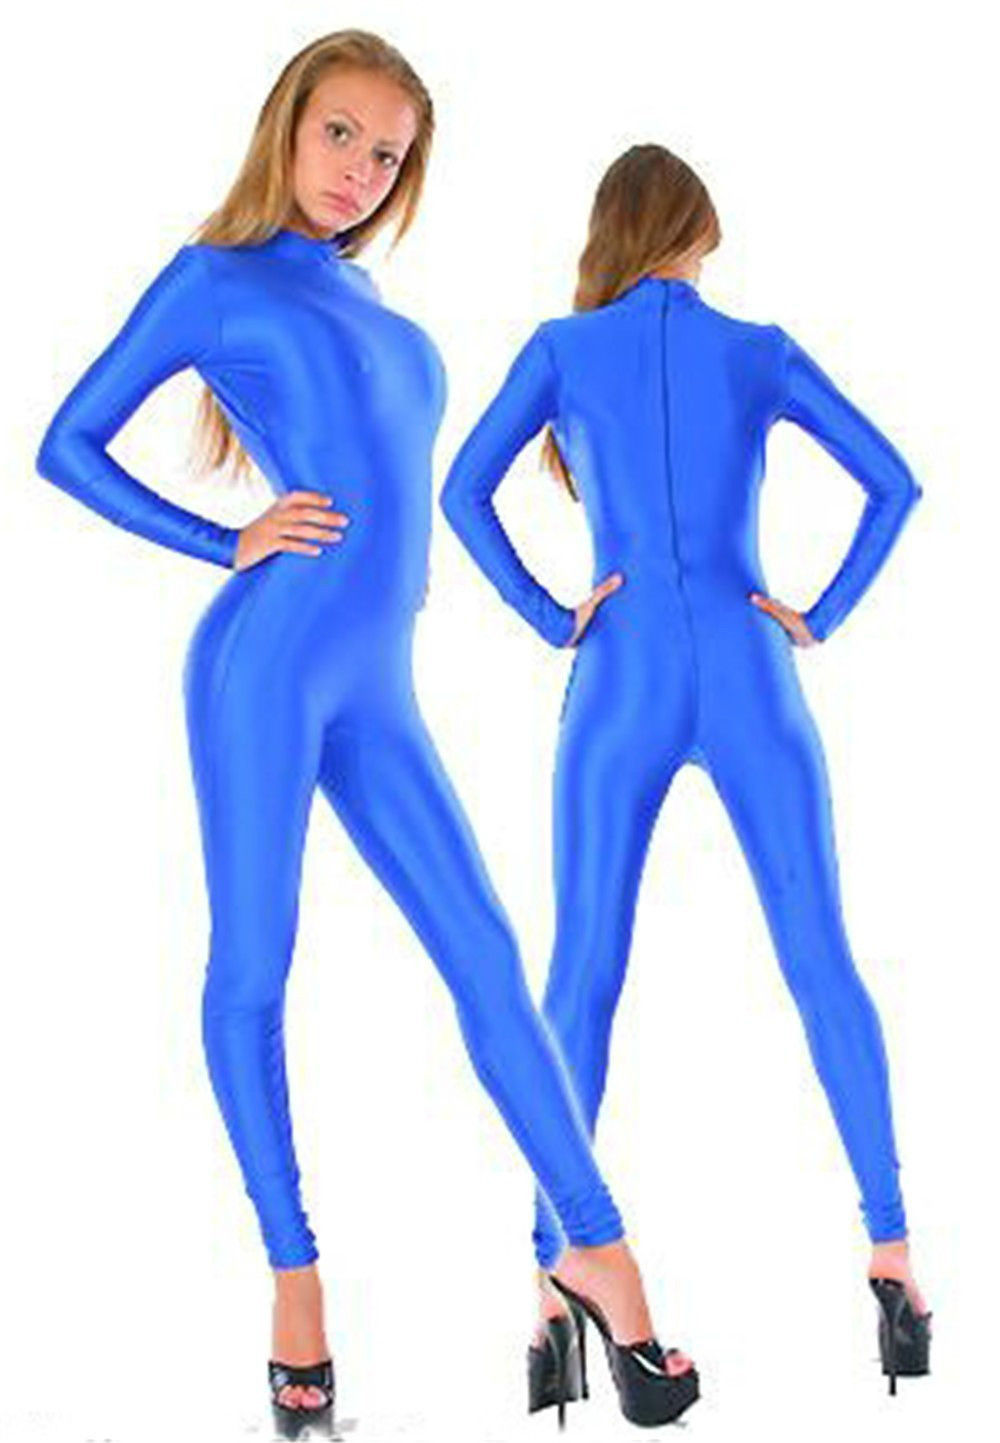 Women Long Sleeve Catsuits Full Body Blue Color Lycra Spandex Party Costume Zentai Suit XS-XXXL Stretch Dancewear